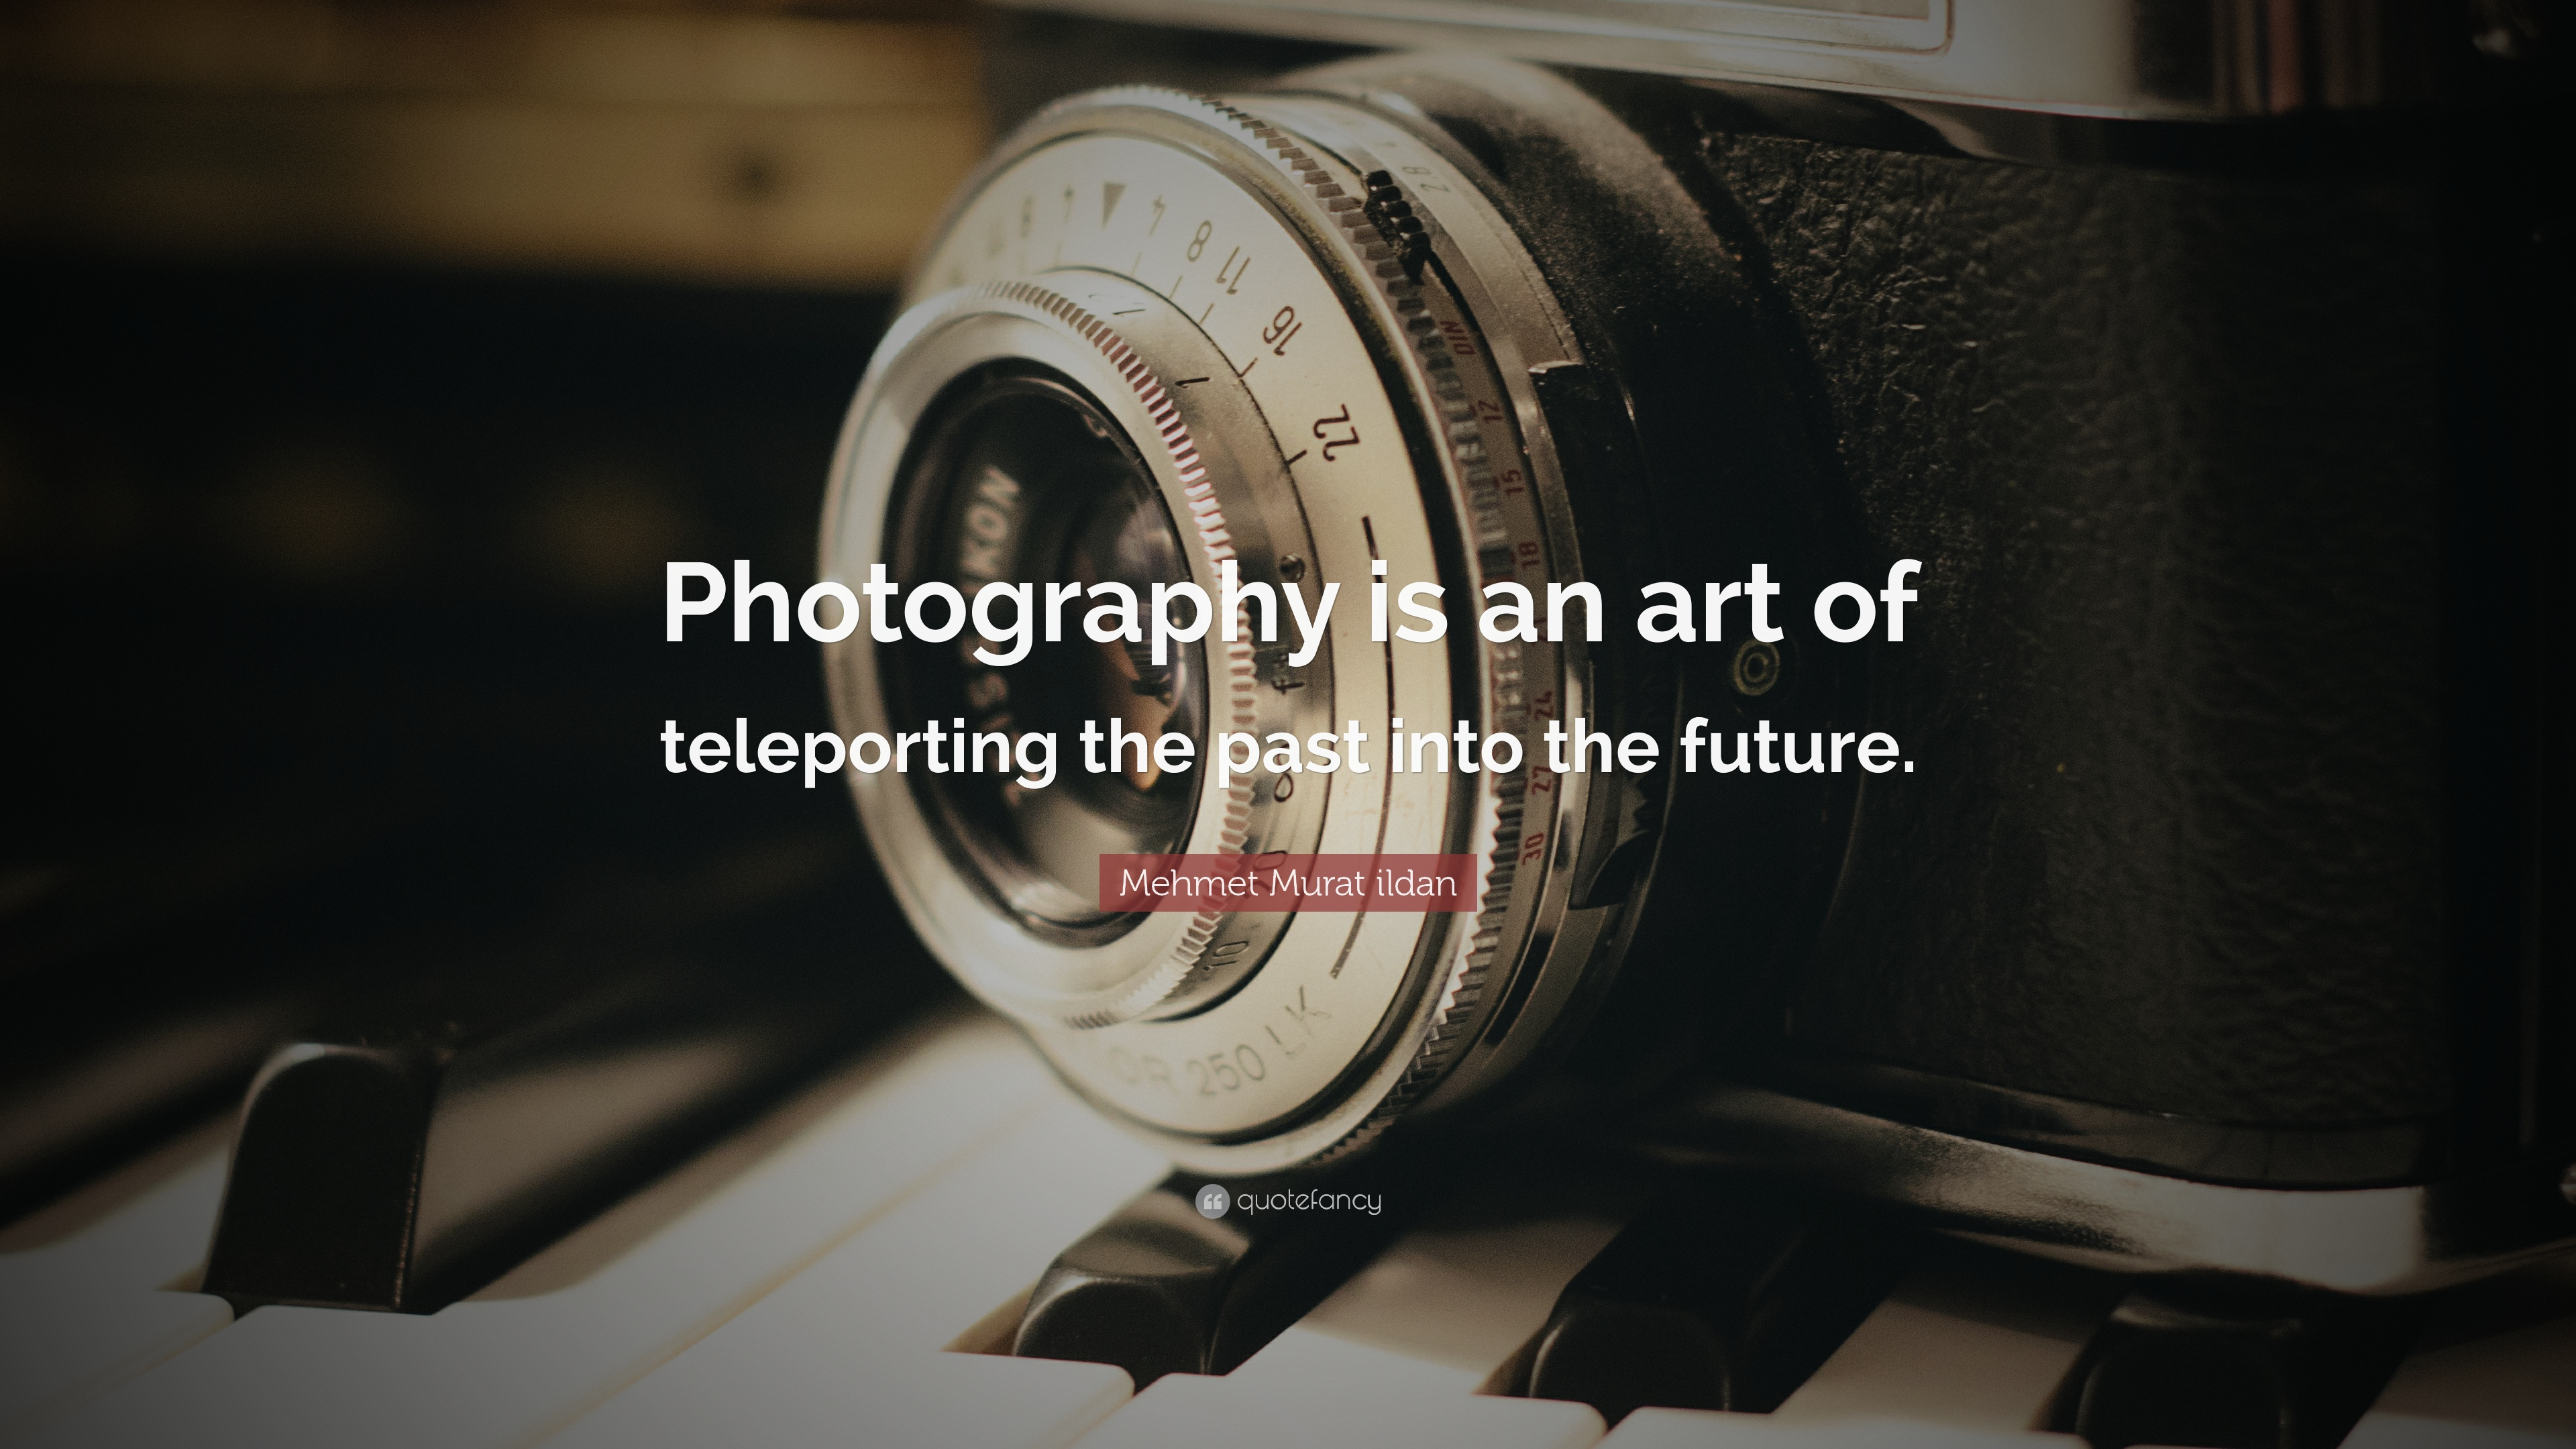 Top 9 Photography Quotes  921 Edition  Free Images - QuoteFancy